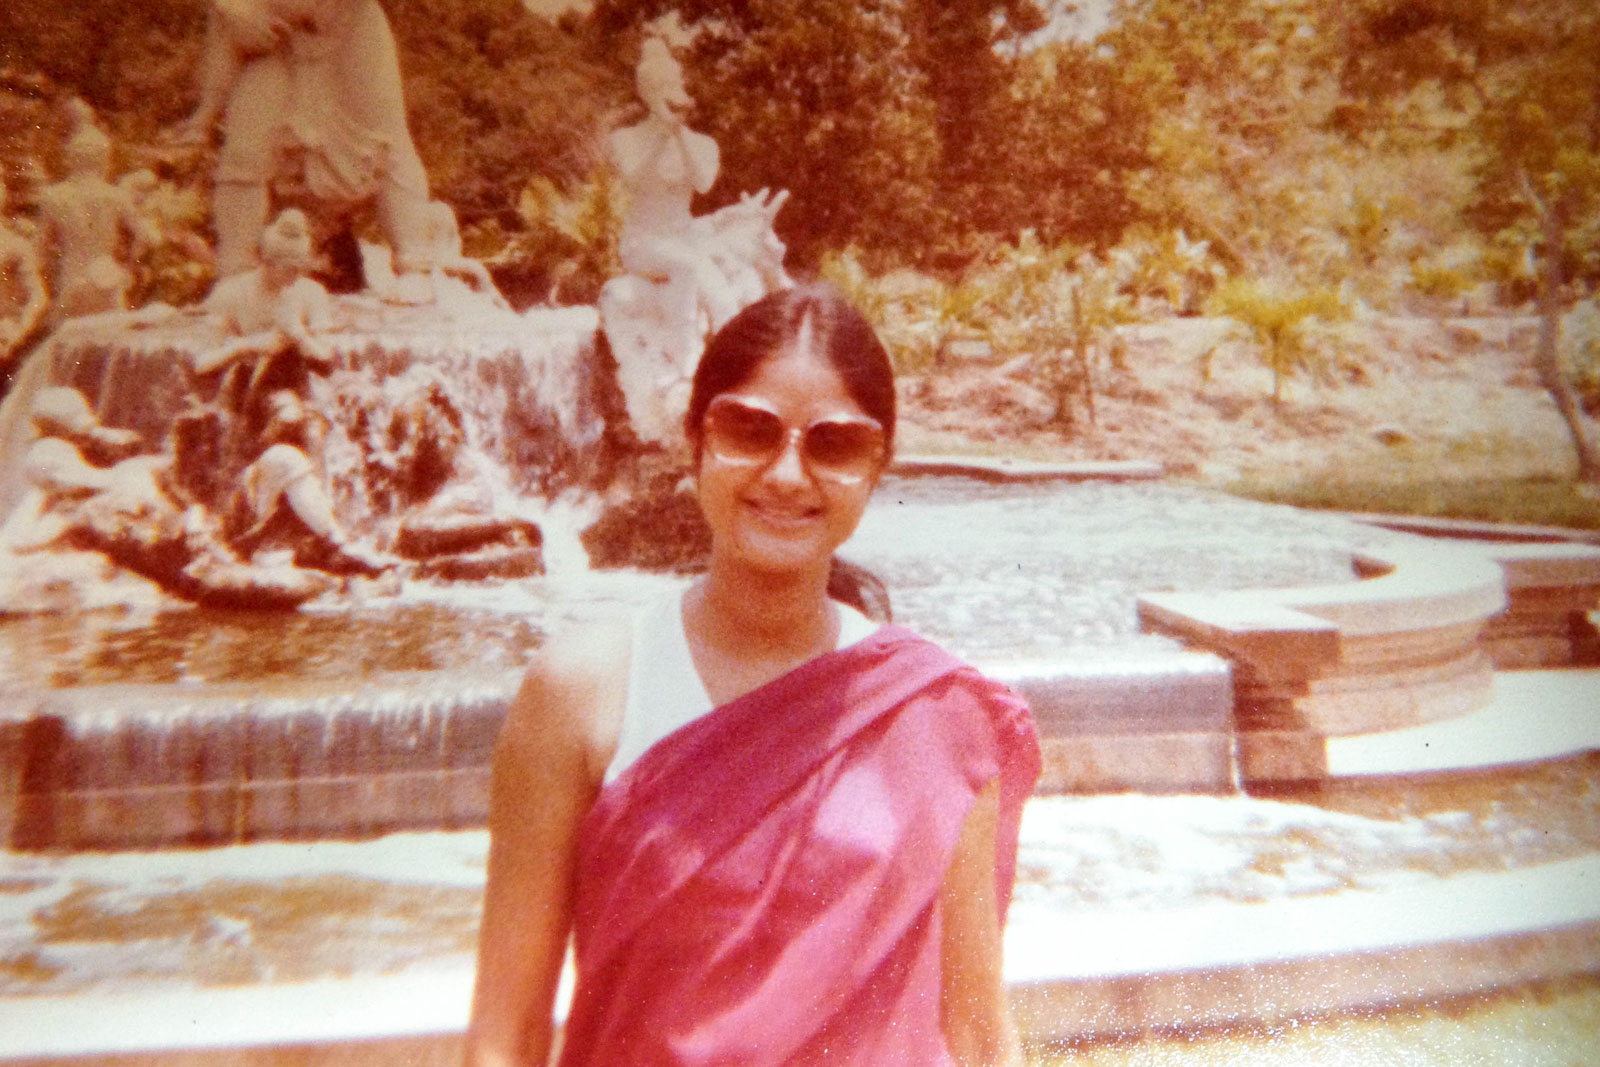 My mom, when I was young